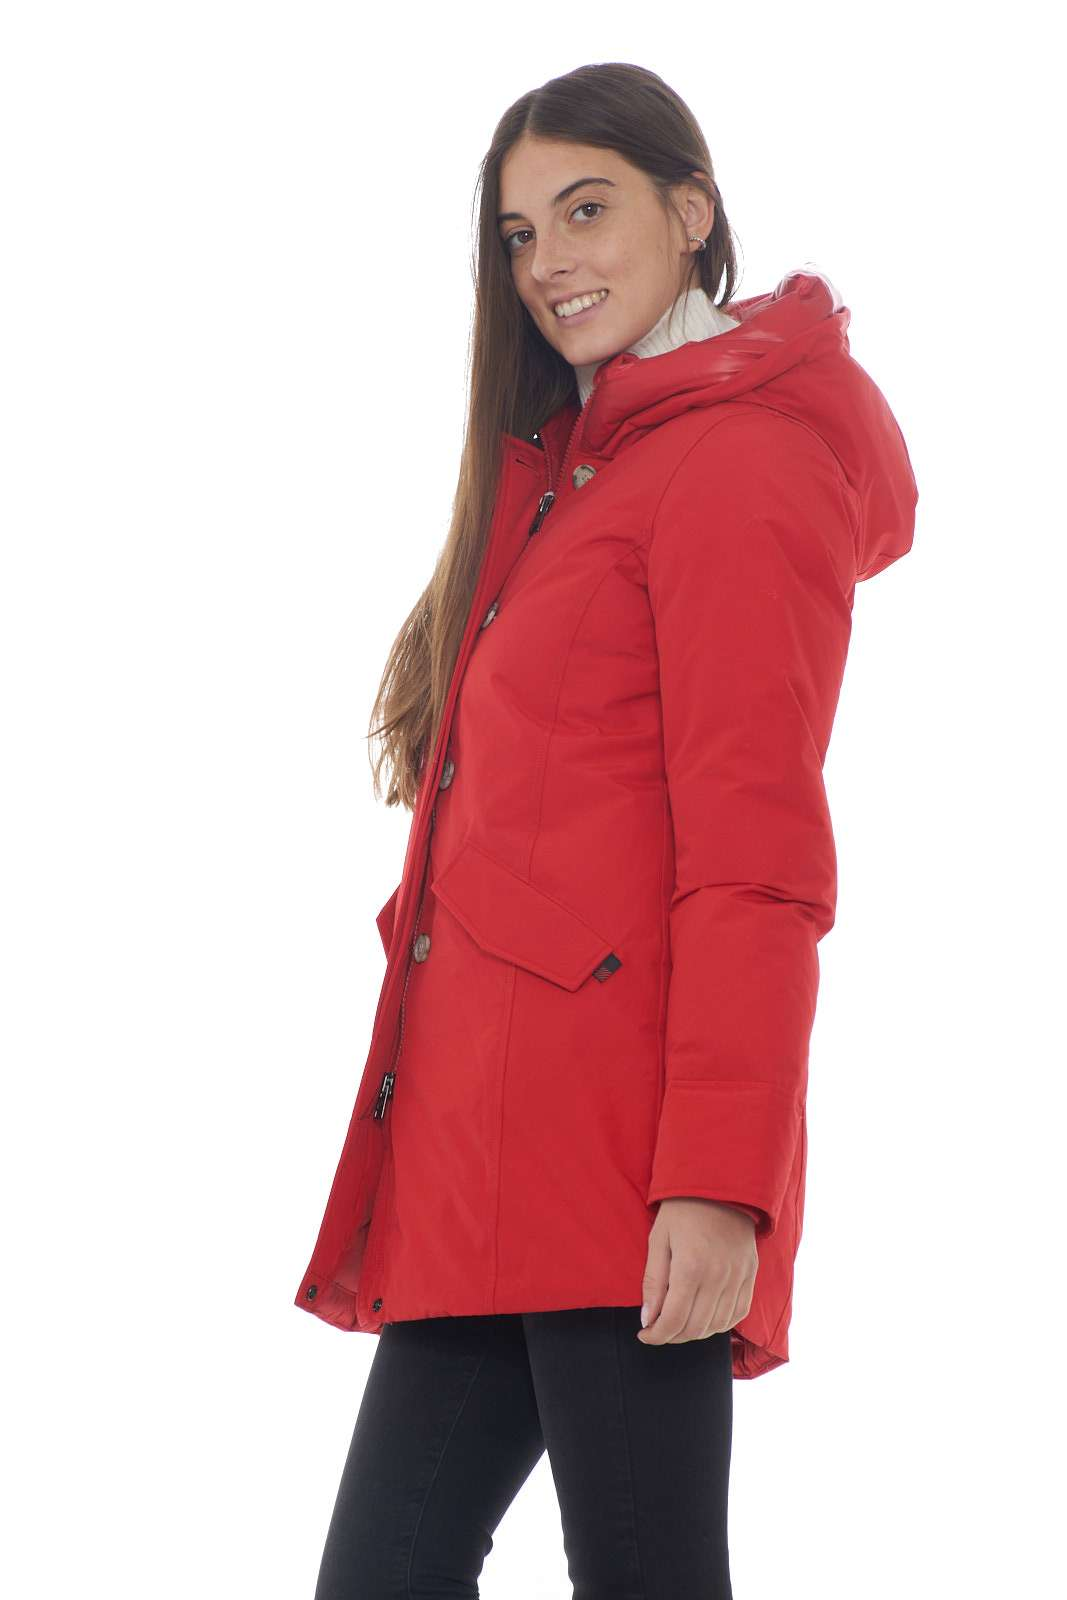 https://www.parmax.com/media/catalog/product/a/i/AI-outlet_parmax-parka-donna-Woolrich-WWCPS2769-B.jpg